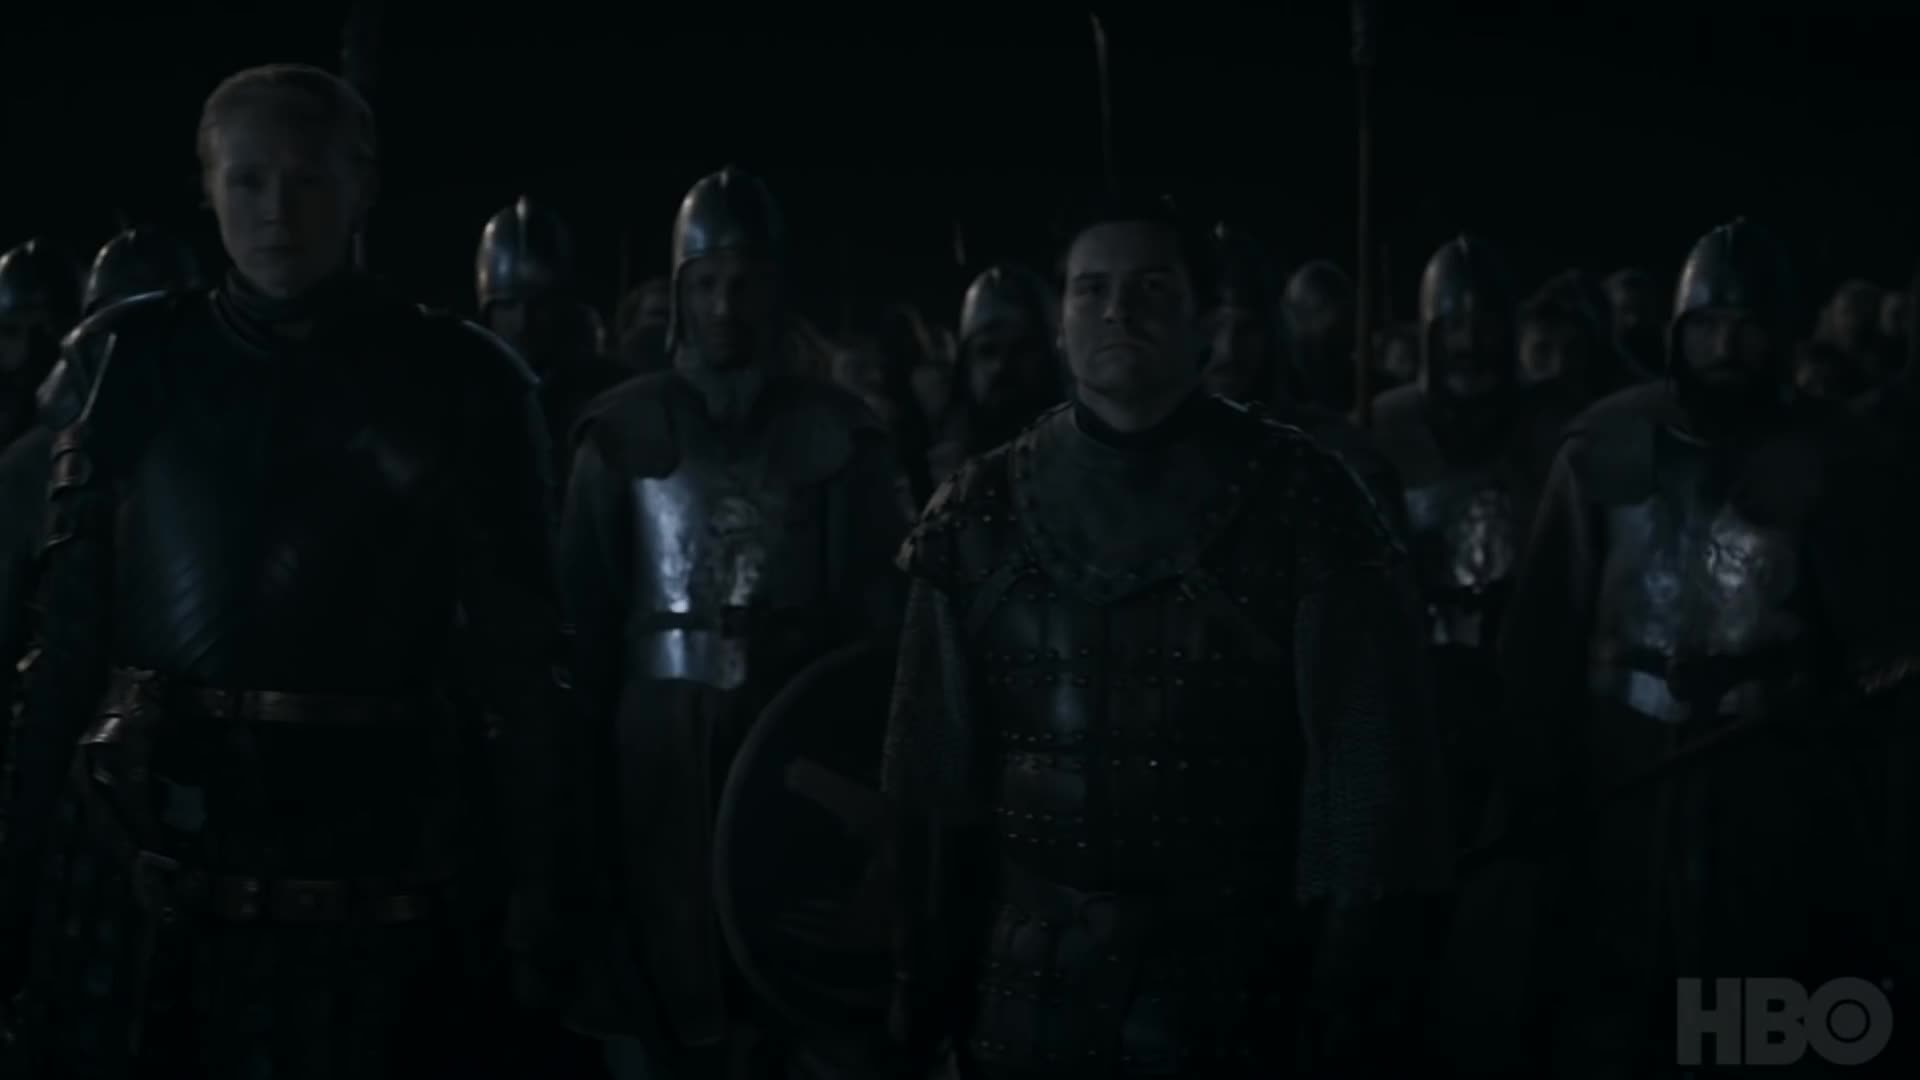 game of thrones, gameofthrones, hbo, night king, season 8, television, white walker, Night King Winterfell Game of Thrones GIFs